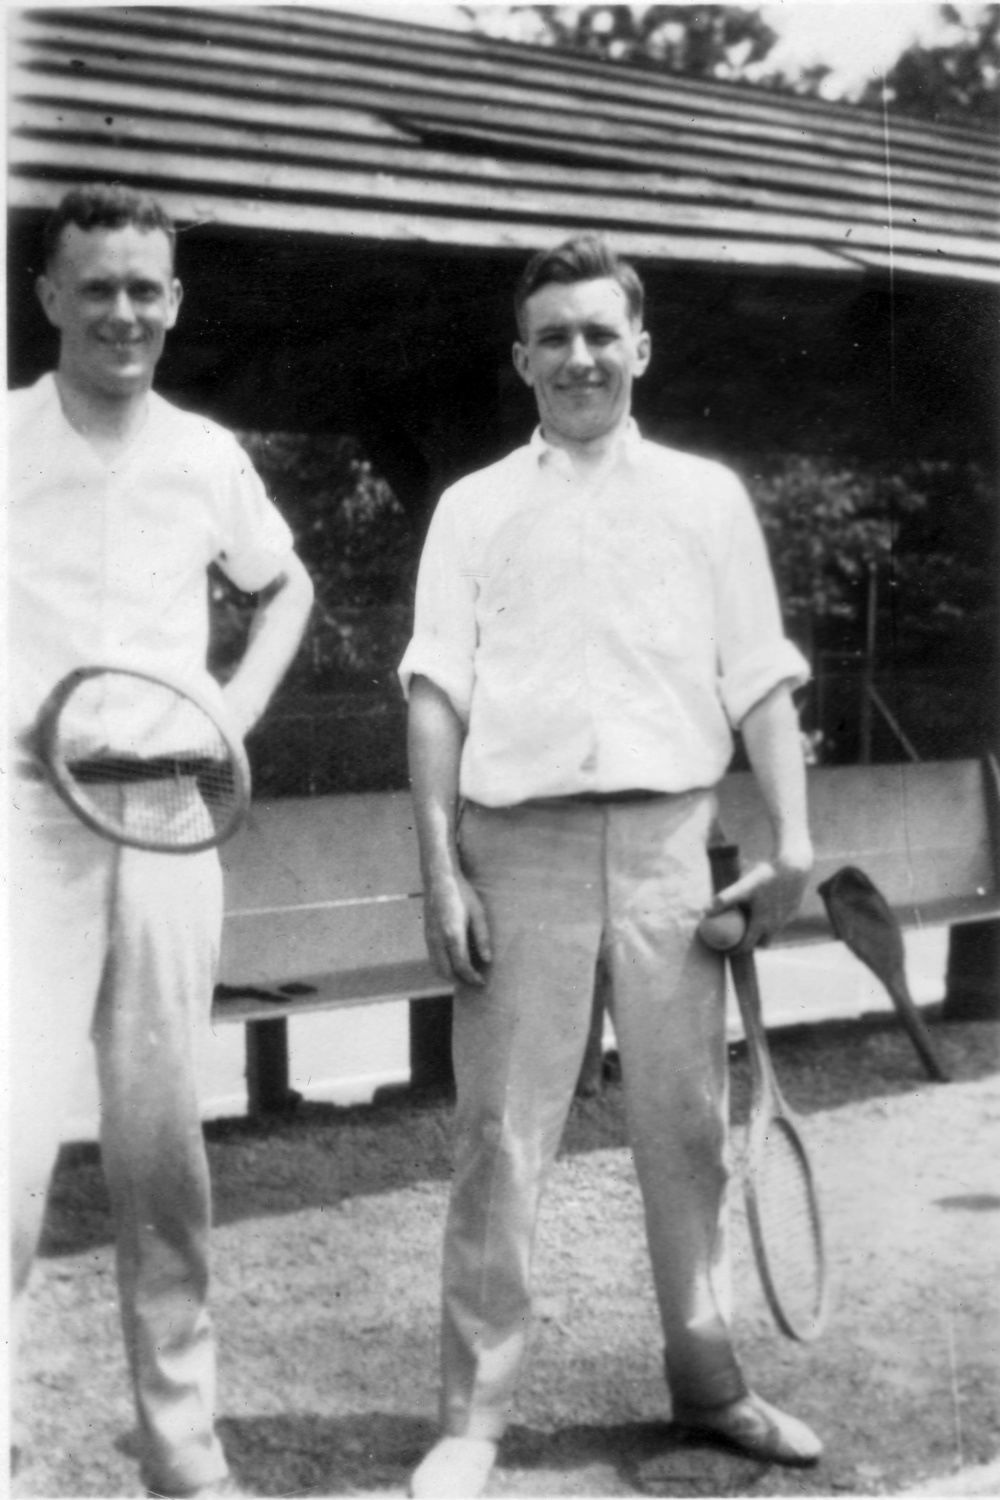 Walter Dickinson and Paul Furnas